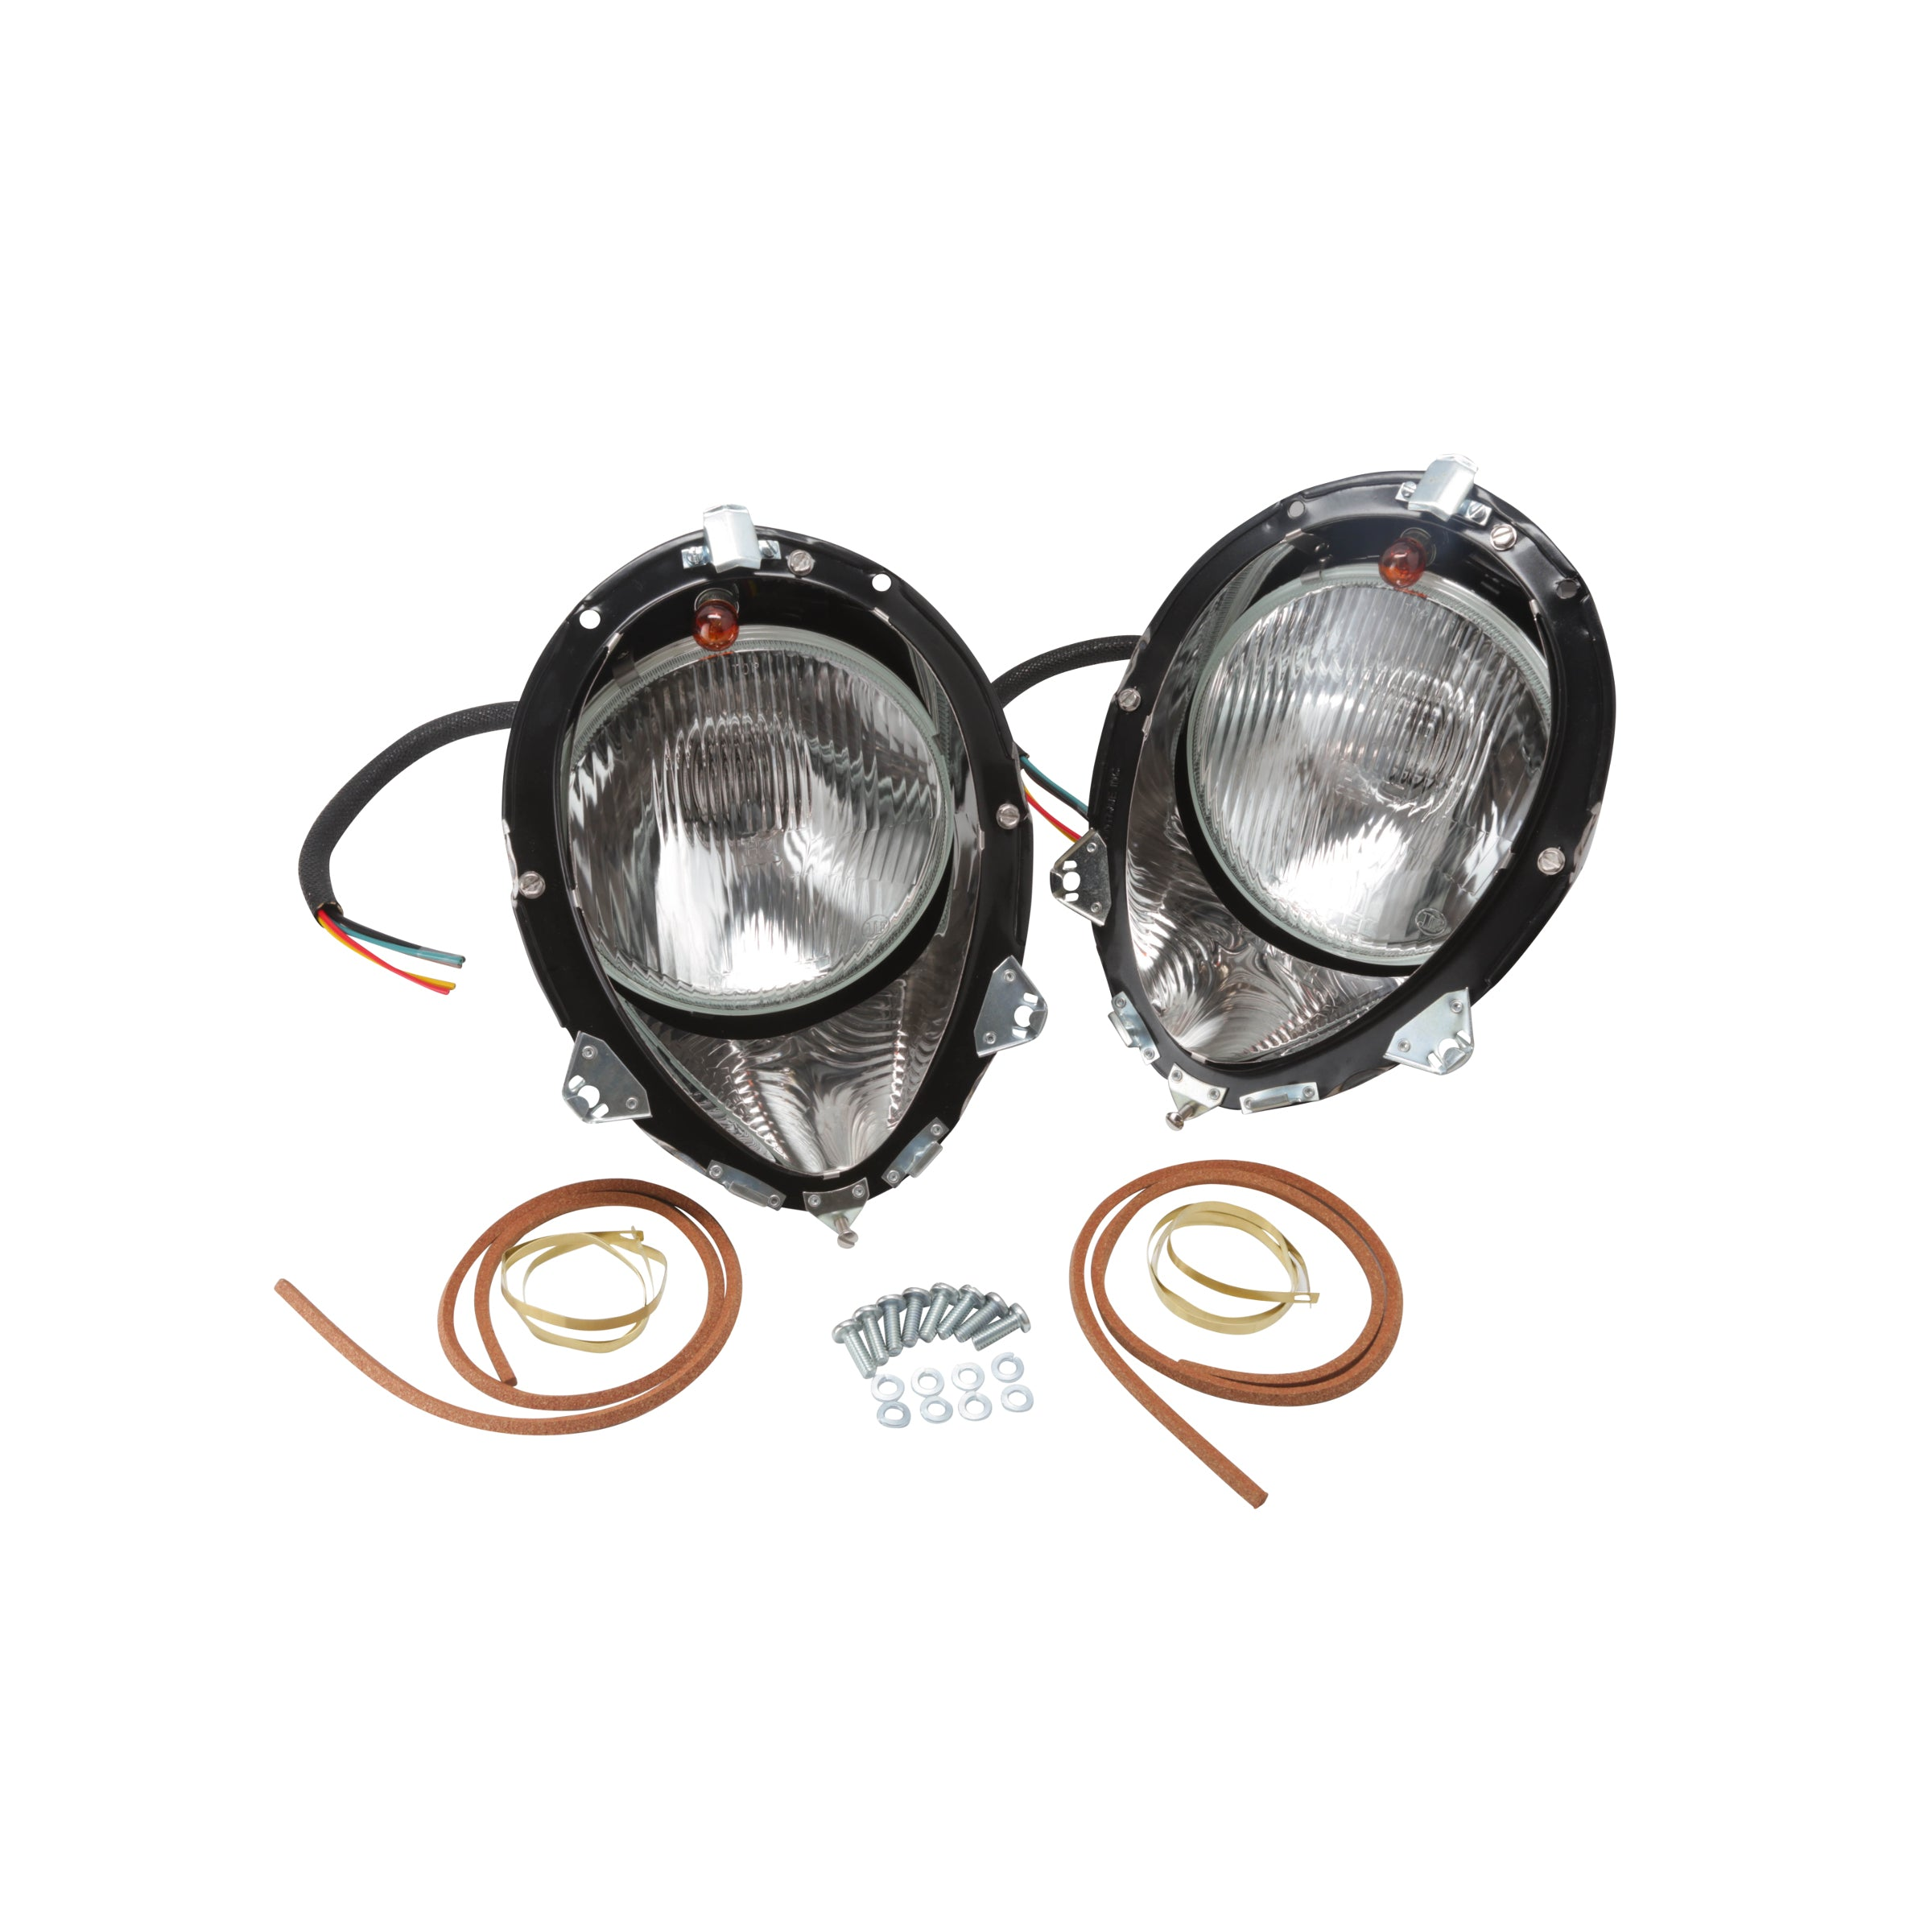 Quartz Halogen Headlight Kit • 1937-38 Ford Passenger & 1939 Standard